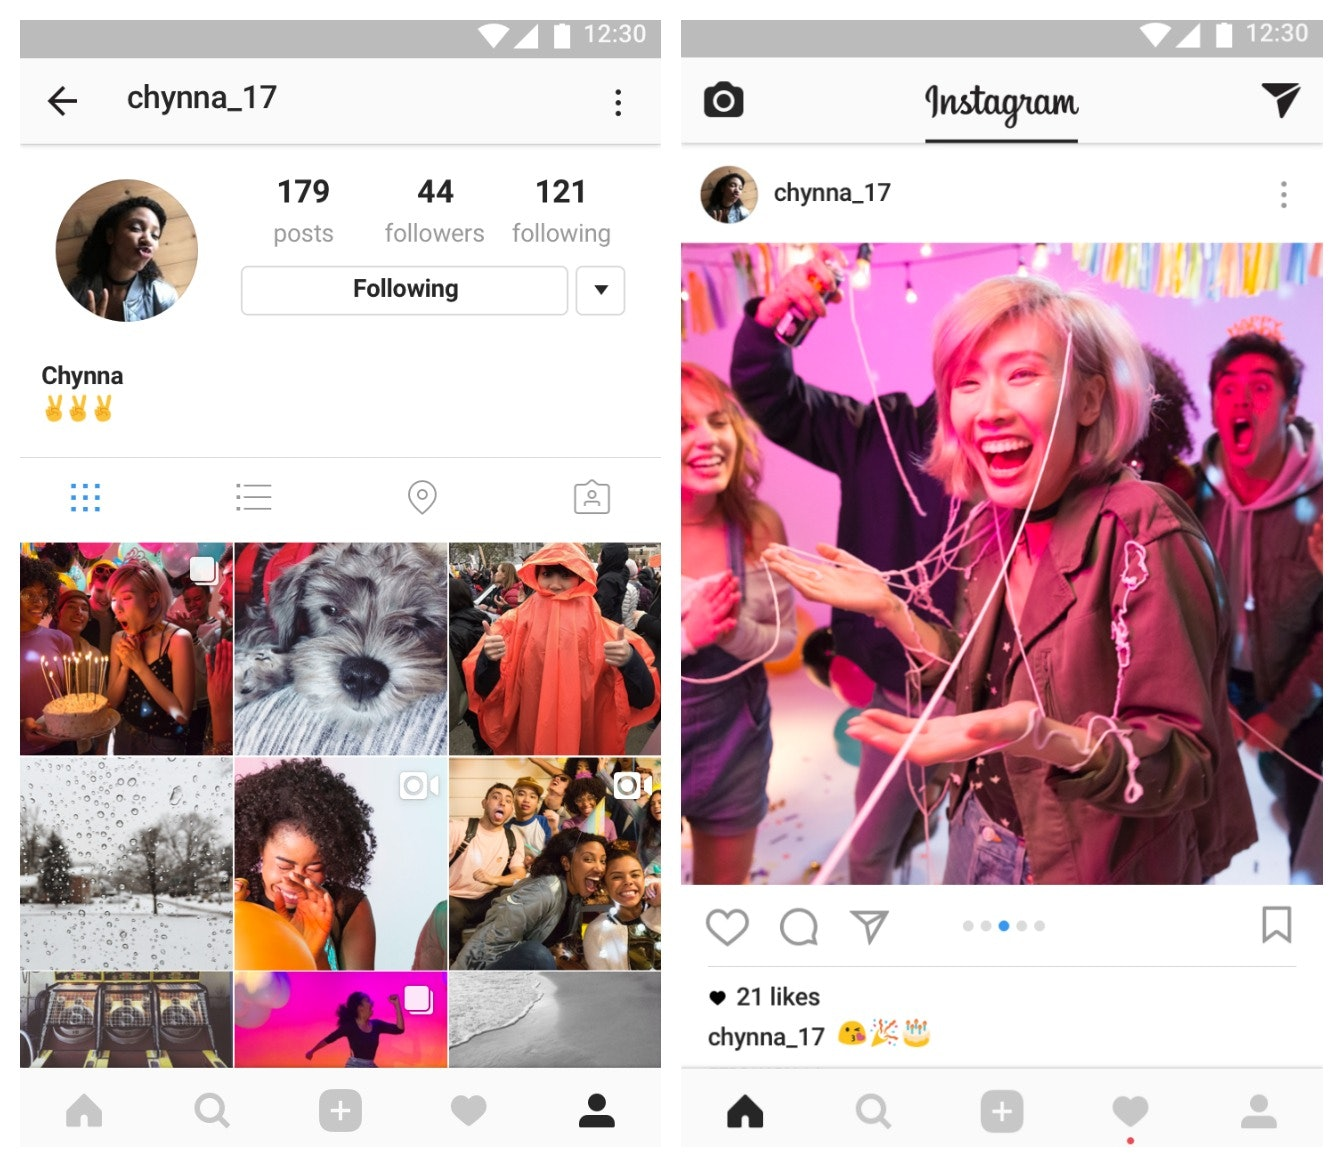 Instagram lets you share up to 10 photos in one post